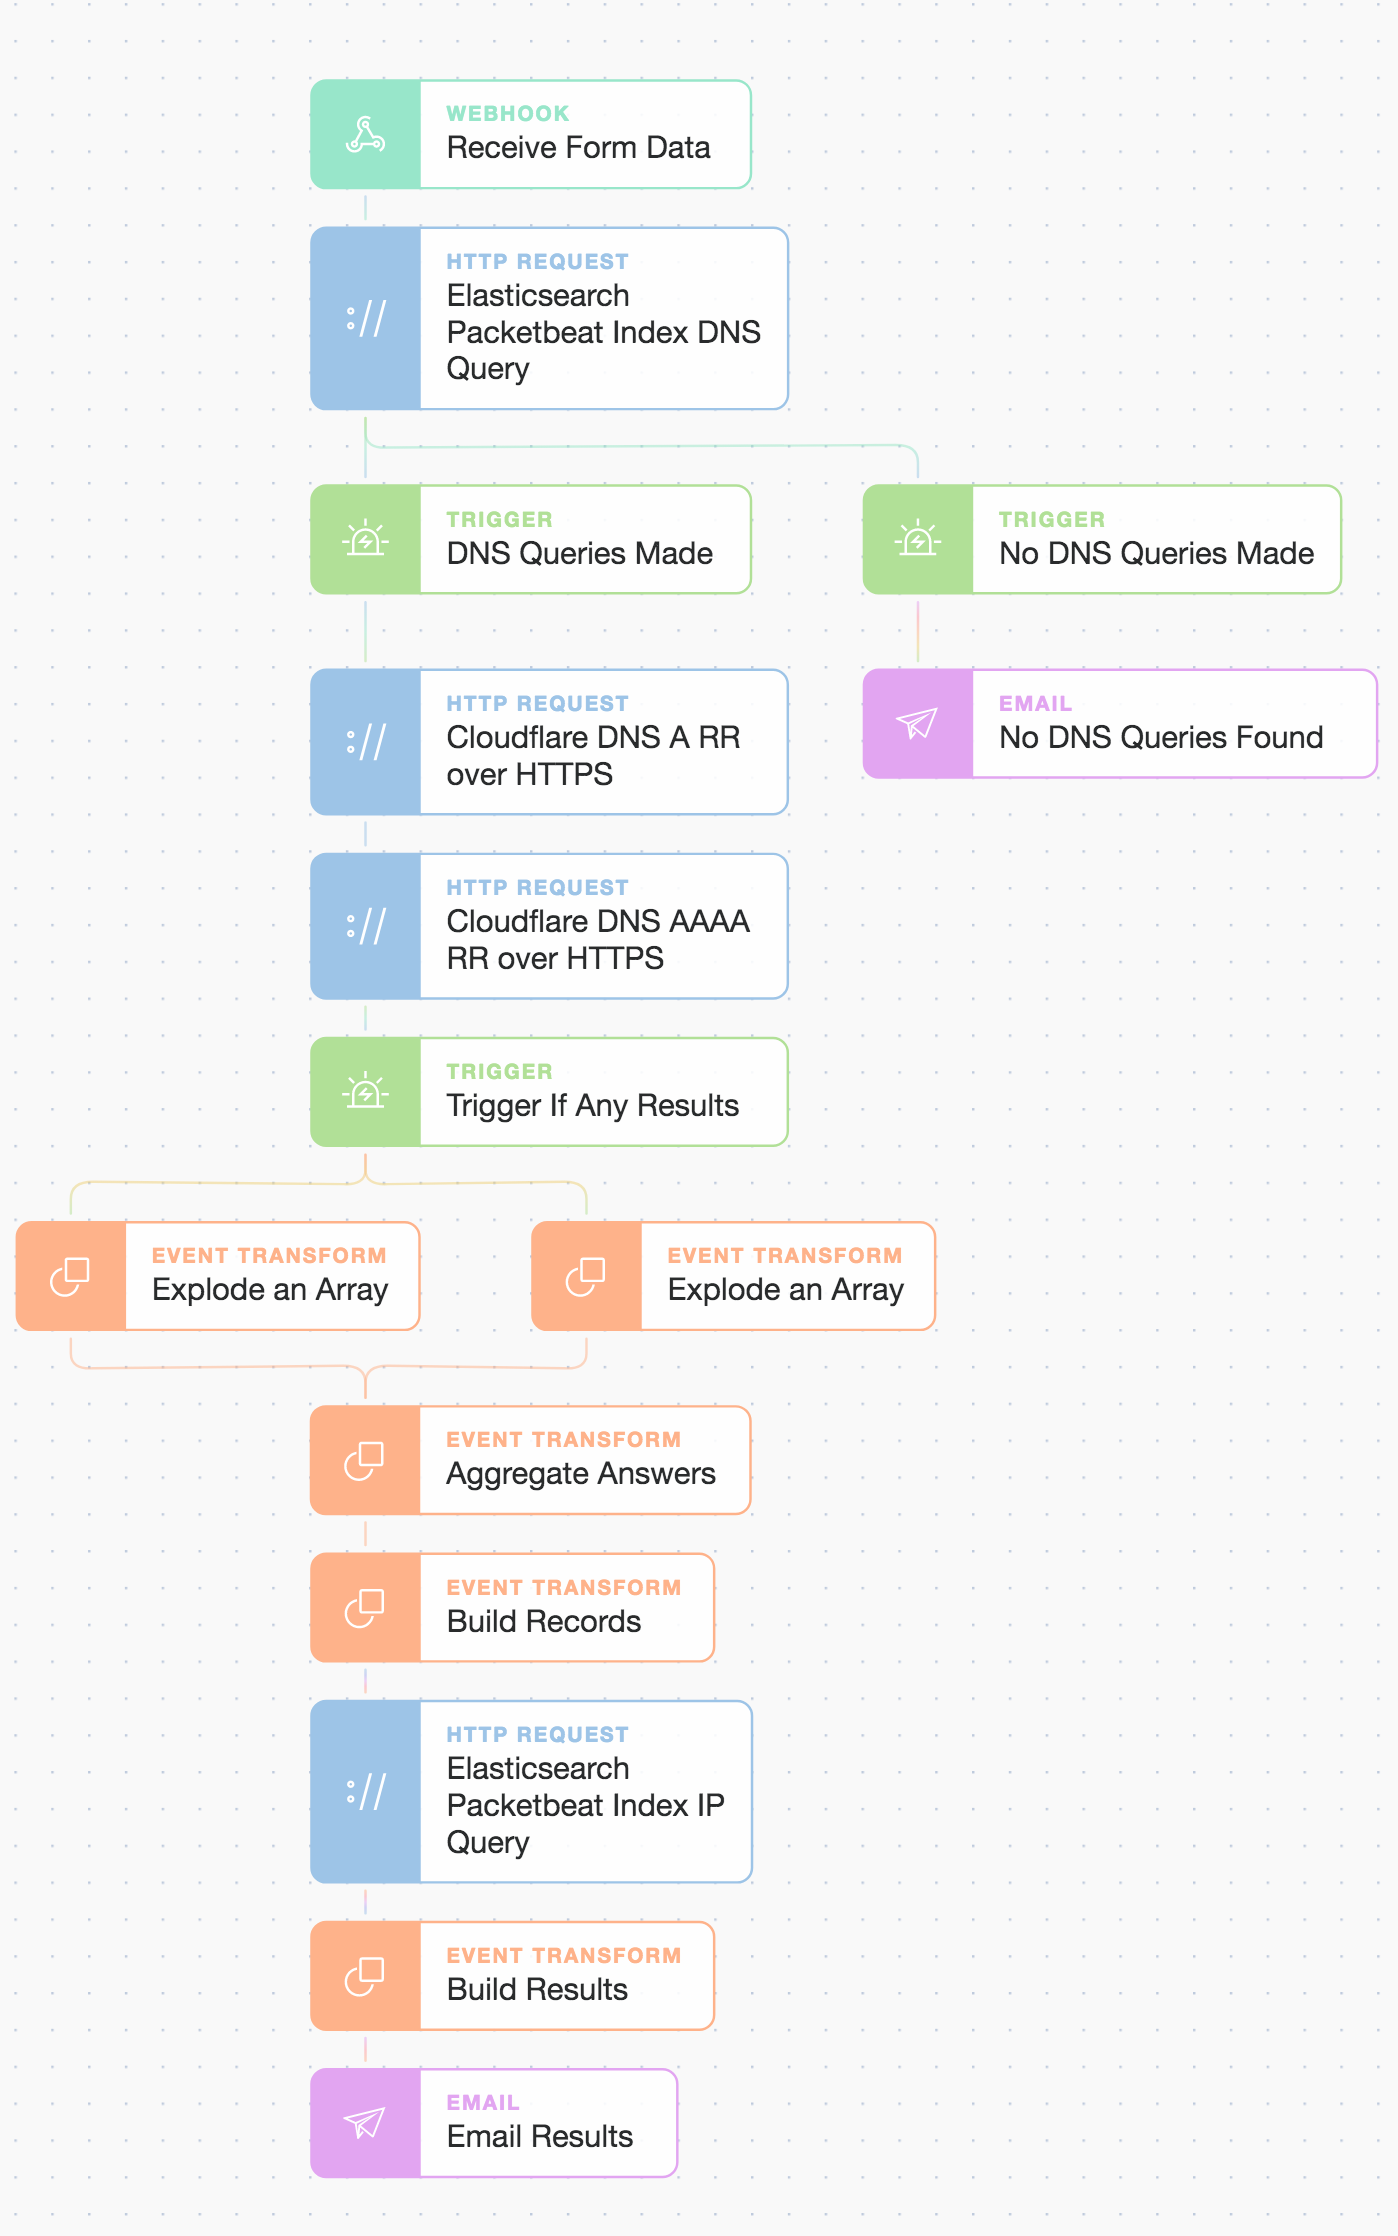 Tines : Combination full story workflow to chain events and present results.